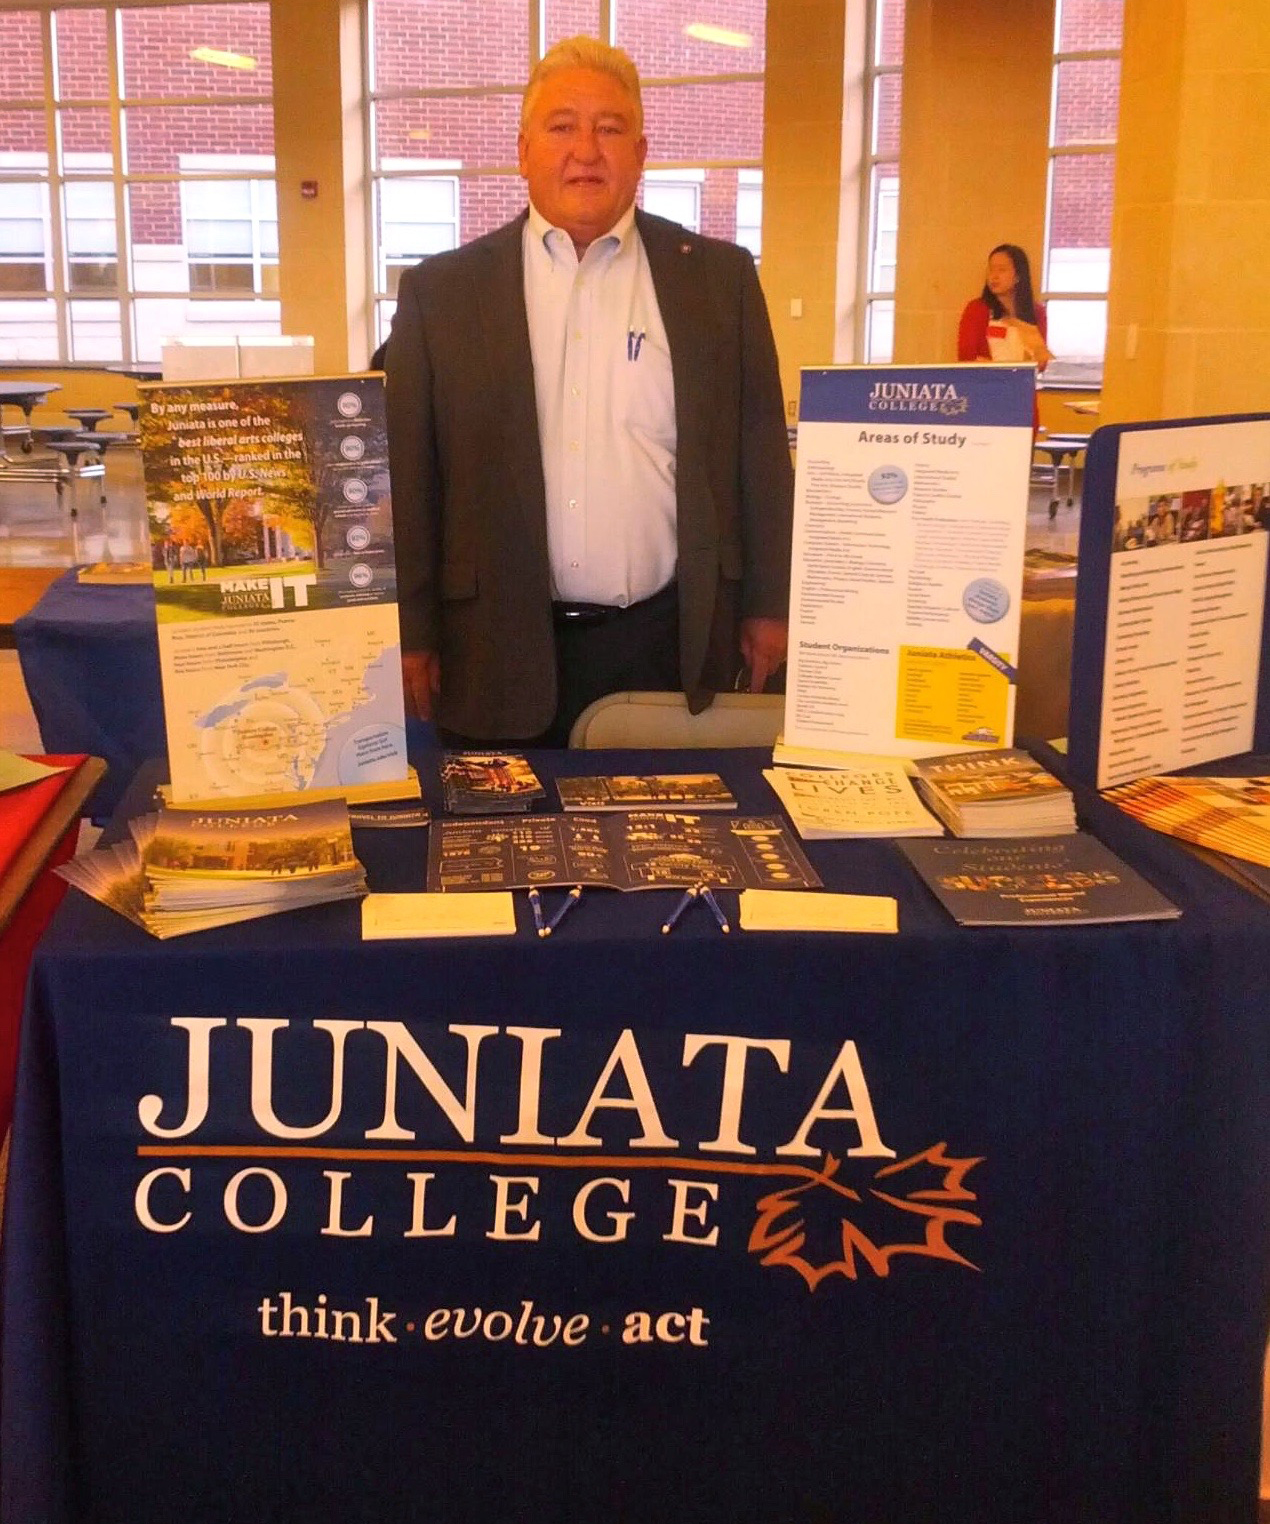 Ron Seilier represents Juniata College at a College Fair